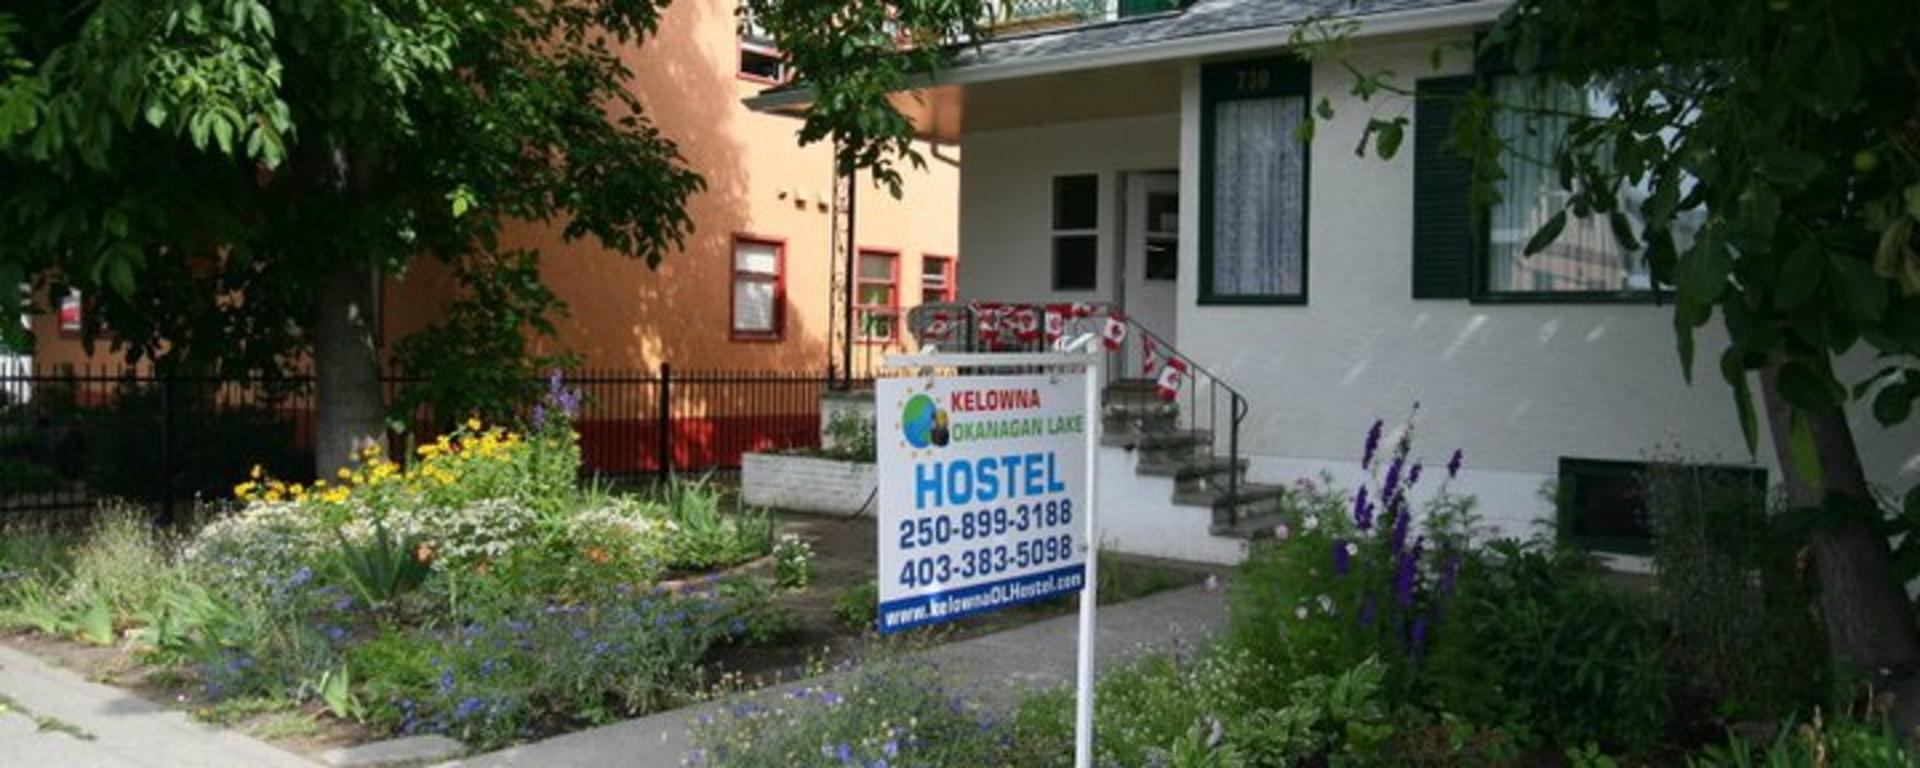 Kelowna Okanagan Lake Hostel